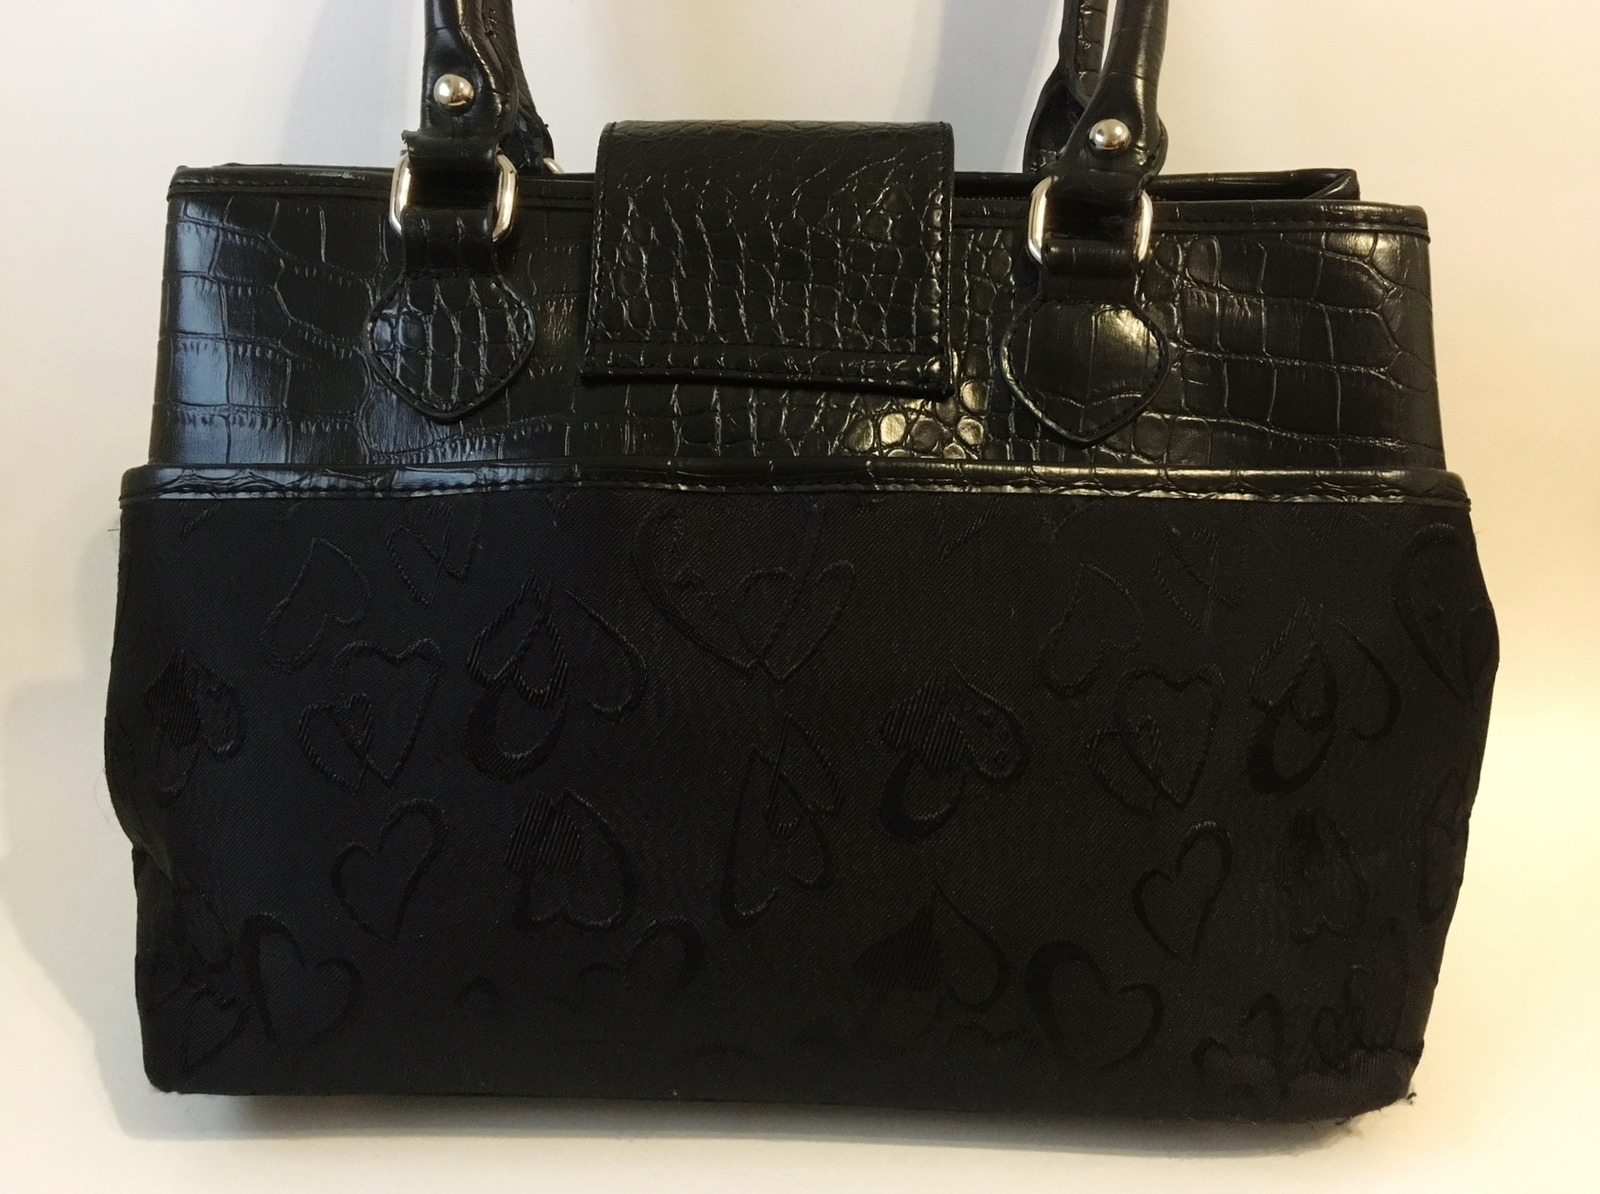 Black Purse Silver Metal Hearts Fabric Faux Croc Leather Handbag Tote Satchel